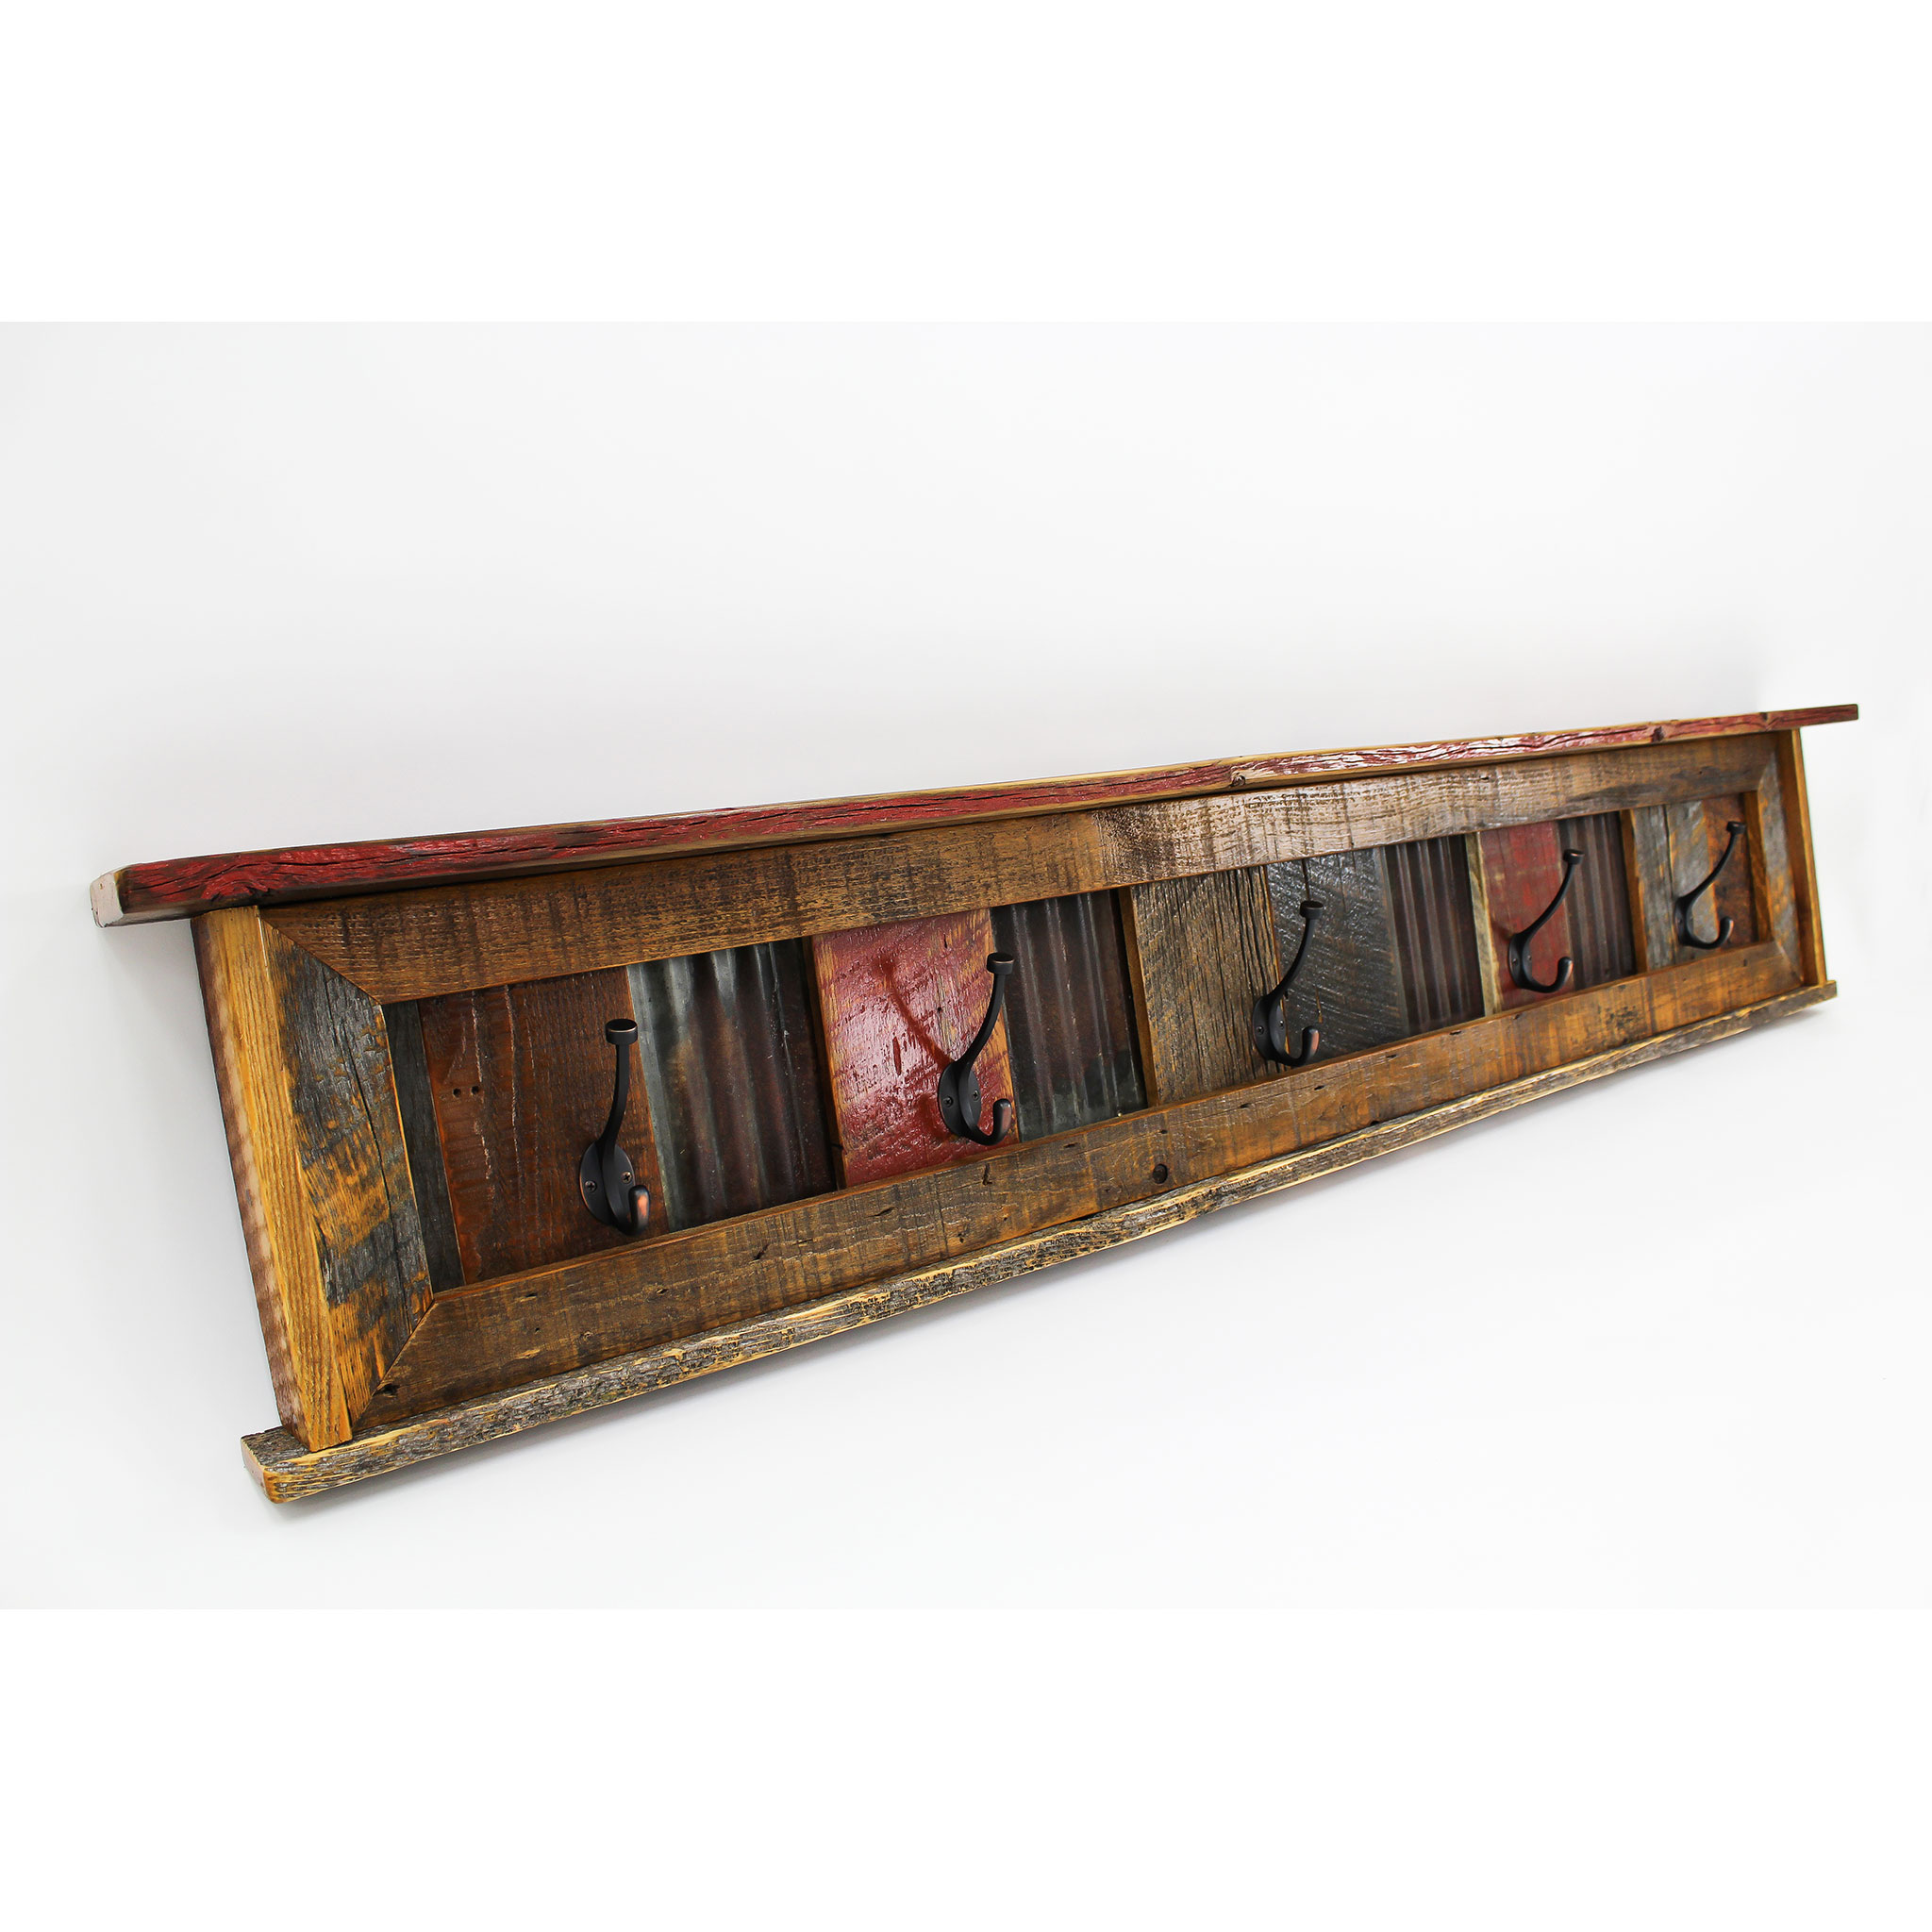 Reclaimed-Barnwood-Wall-Mounted-Coat-Rack-With-Shelf-3